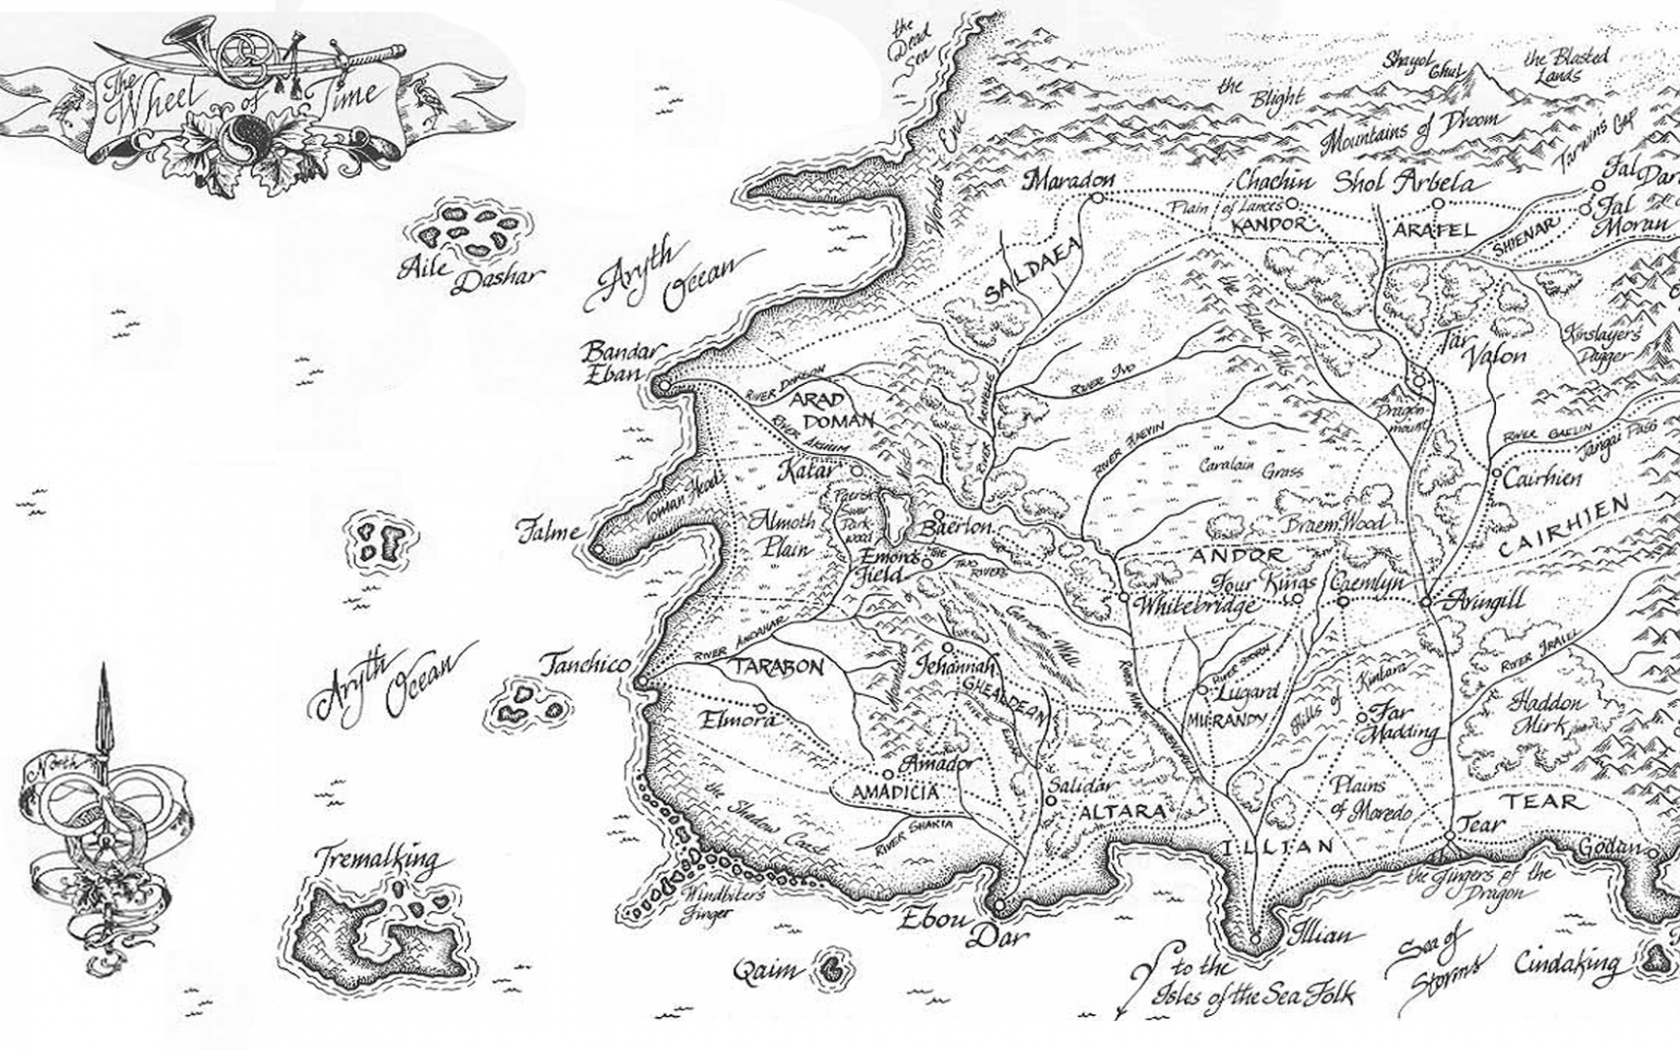 Free Download Robert Jordan Wheel Of Time Map Wallpapers Hd 546581 1920x1080 For Your Desktop Mobile Tablet Explore 47 Wheel Of Time Wallpaper Wheel Of Time Wallpaper Ocarina Of